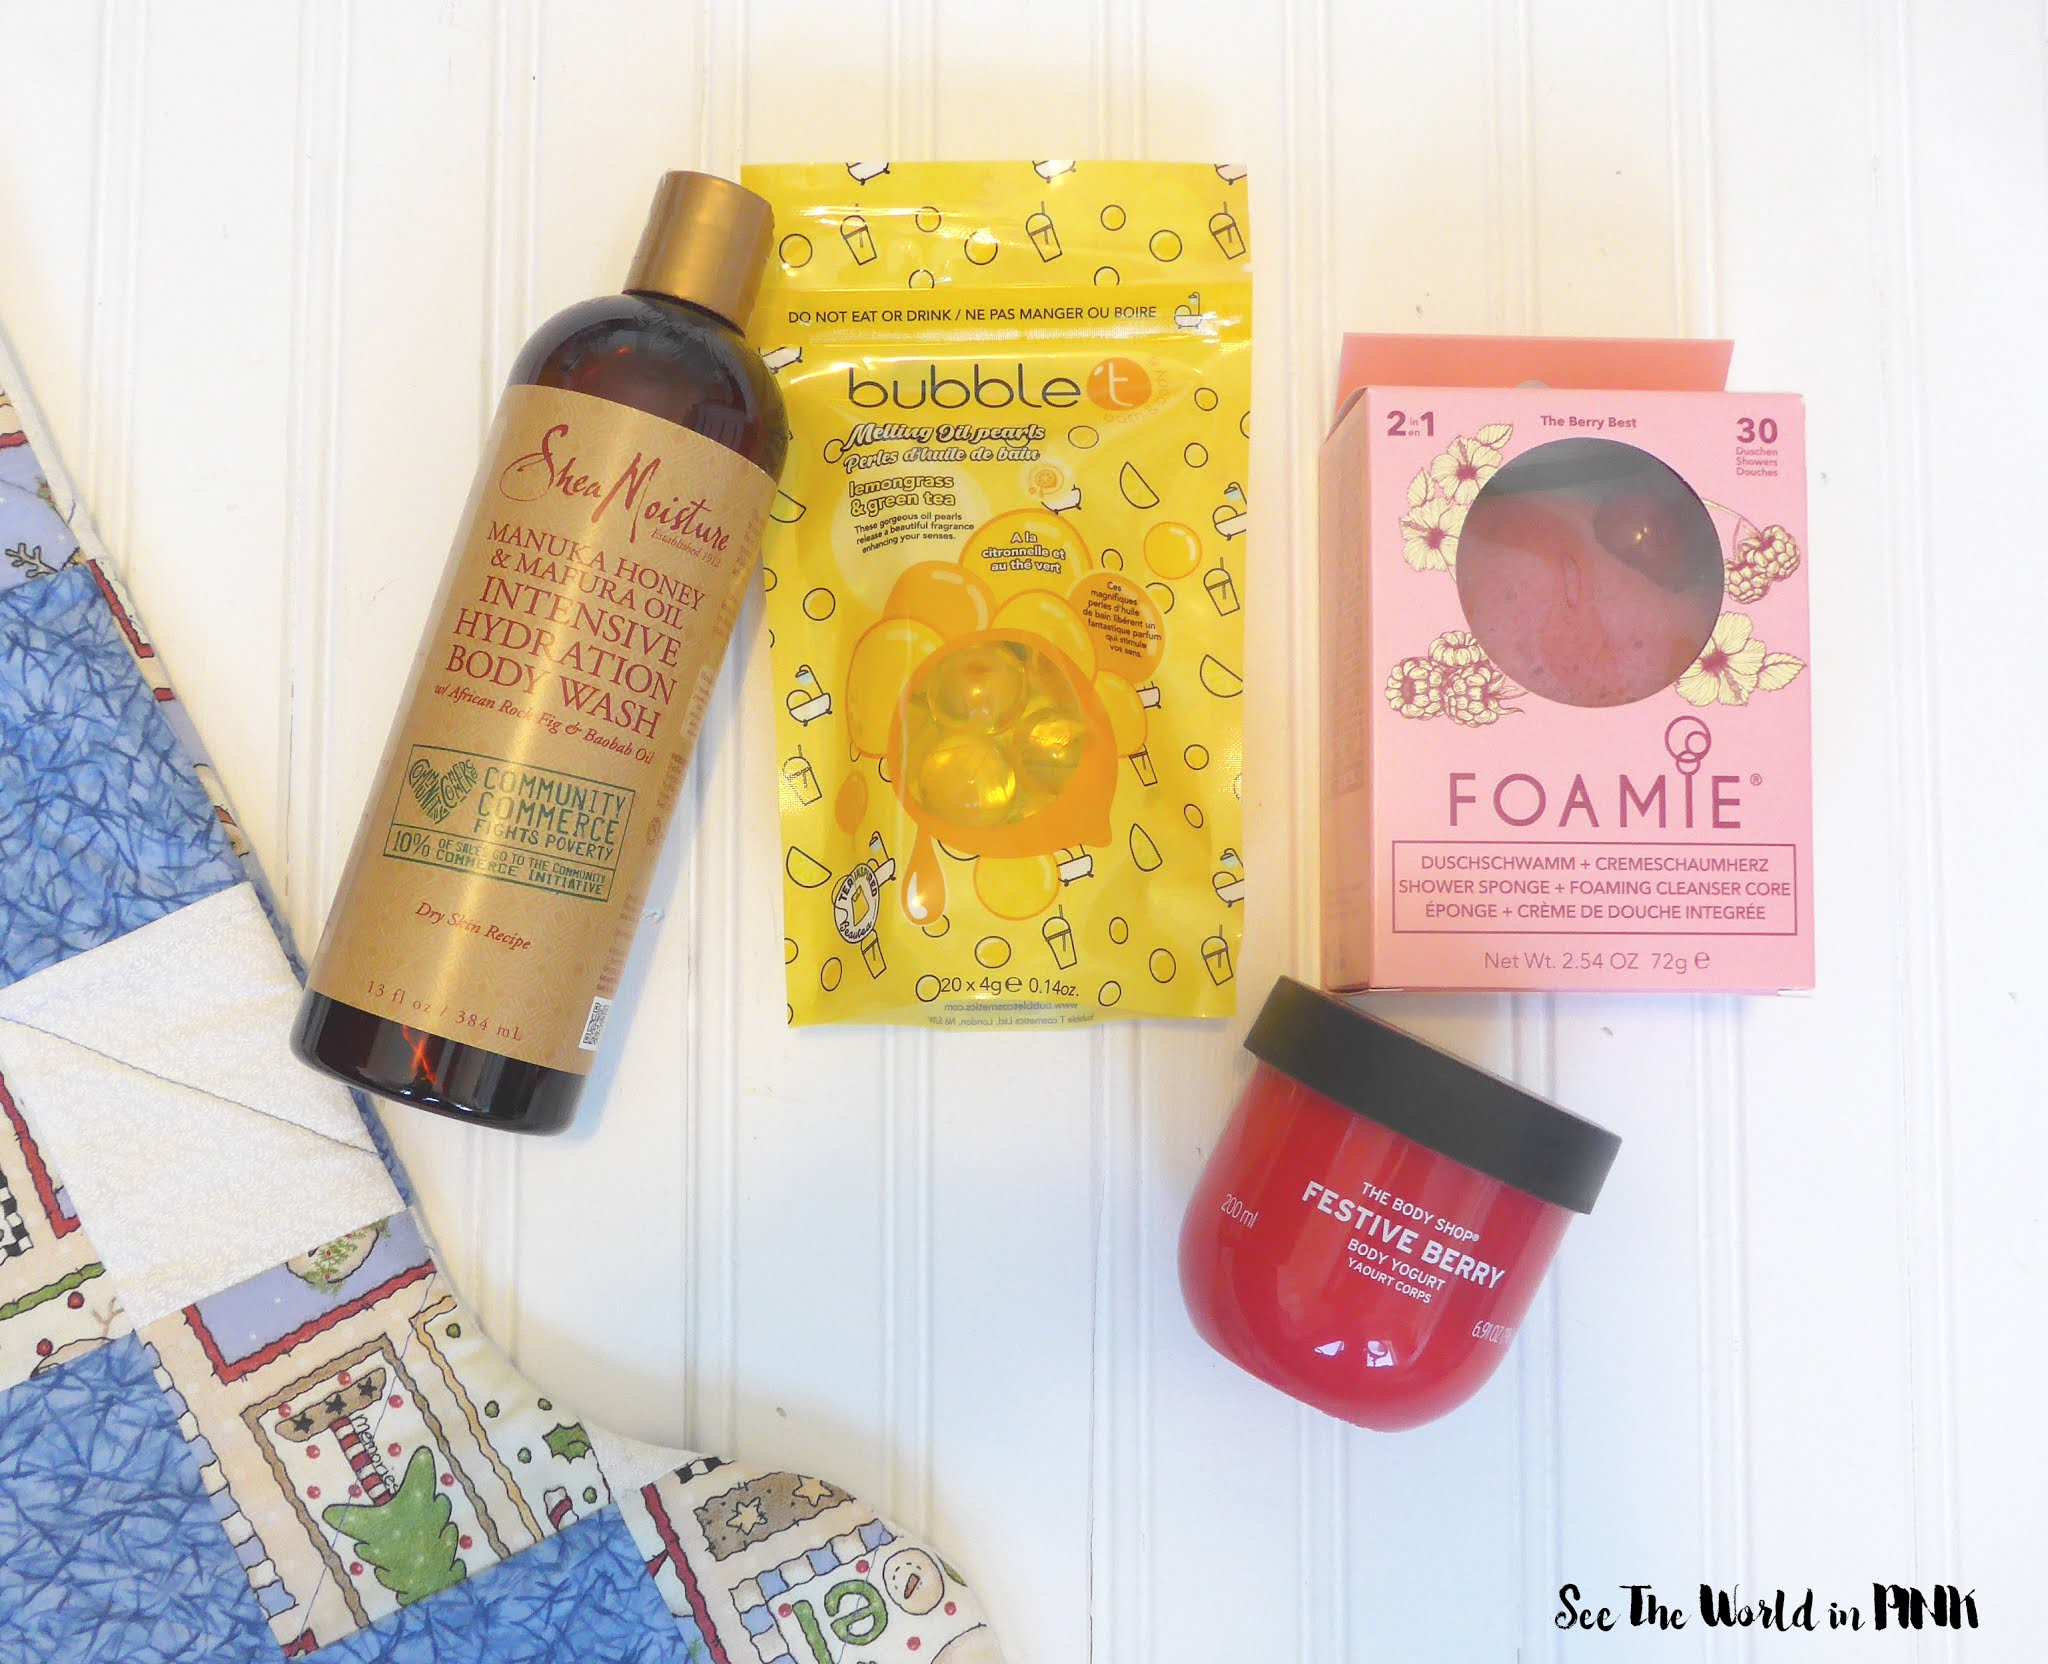 Last Minute, Easy Pickup Beauty, Bath & Body Gifts and Stocking Stuffers!